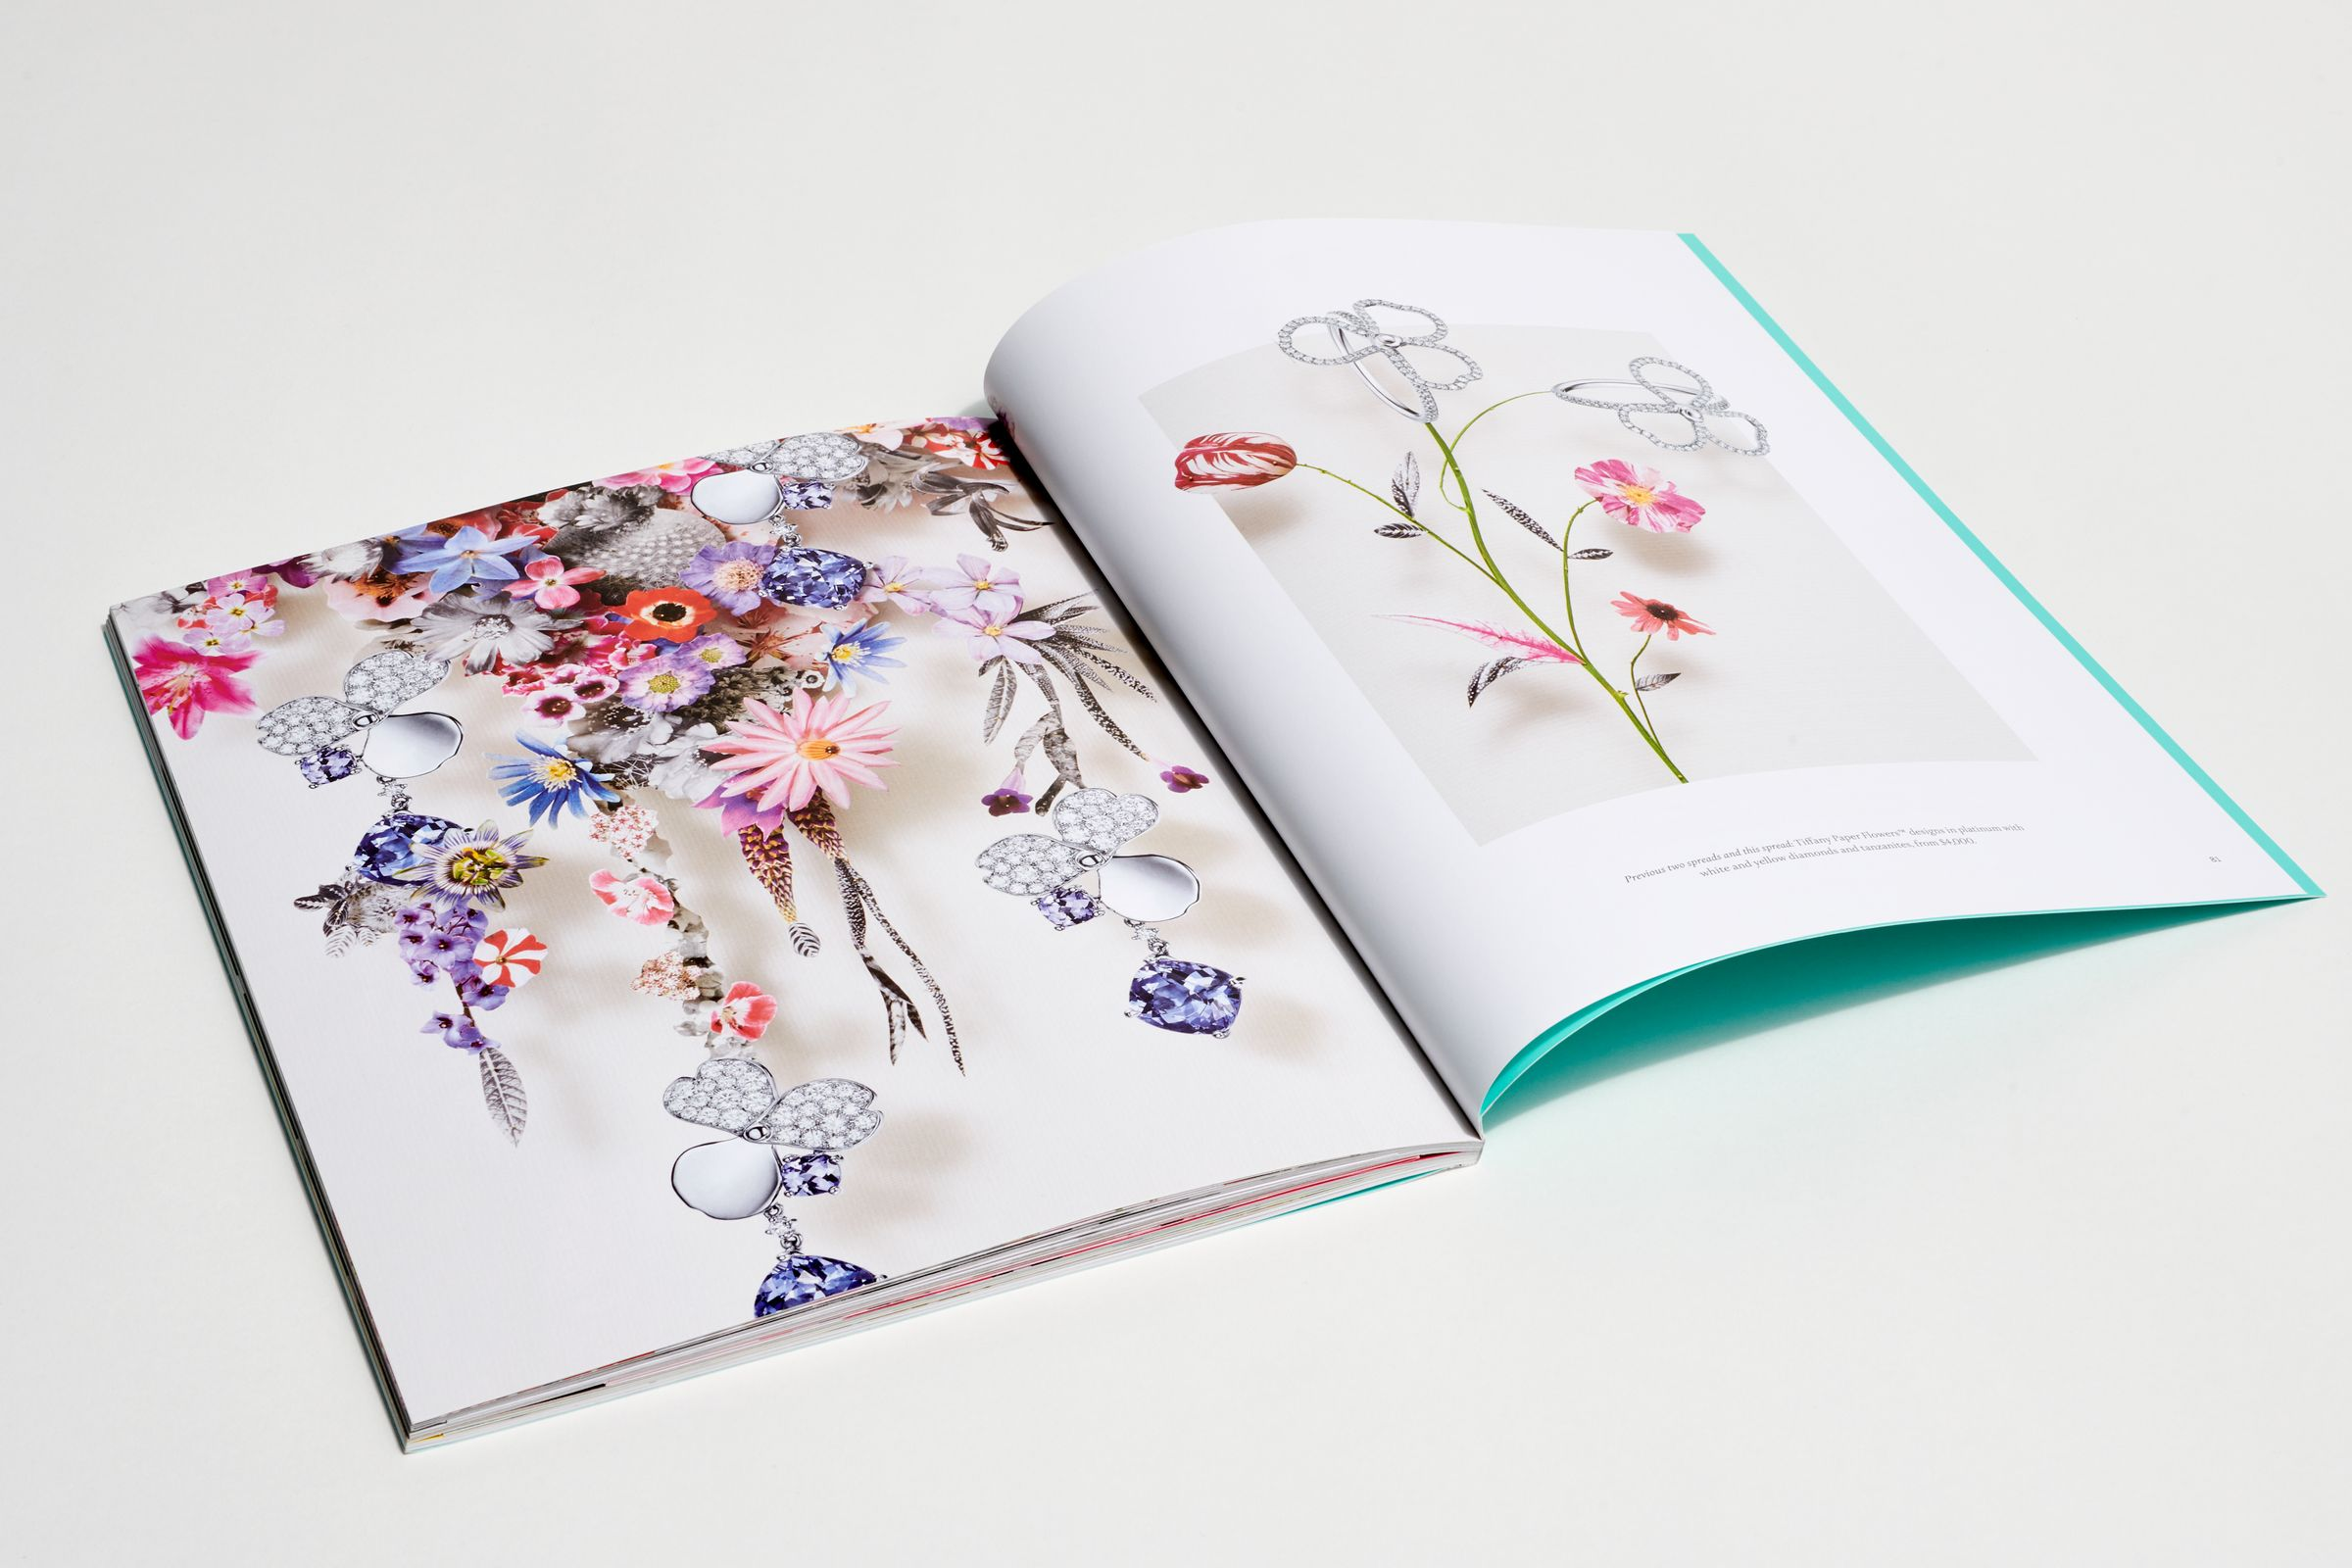 This is Tiffany magazine Issue 7 flower story spread layout design